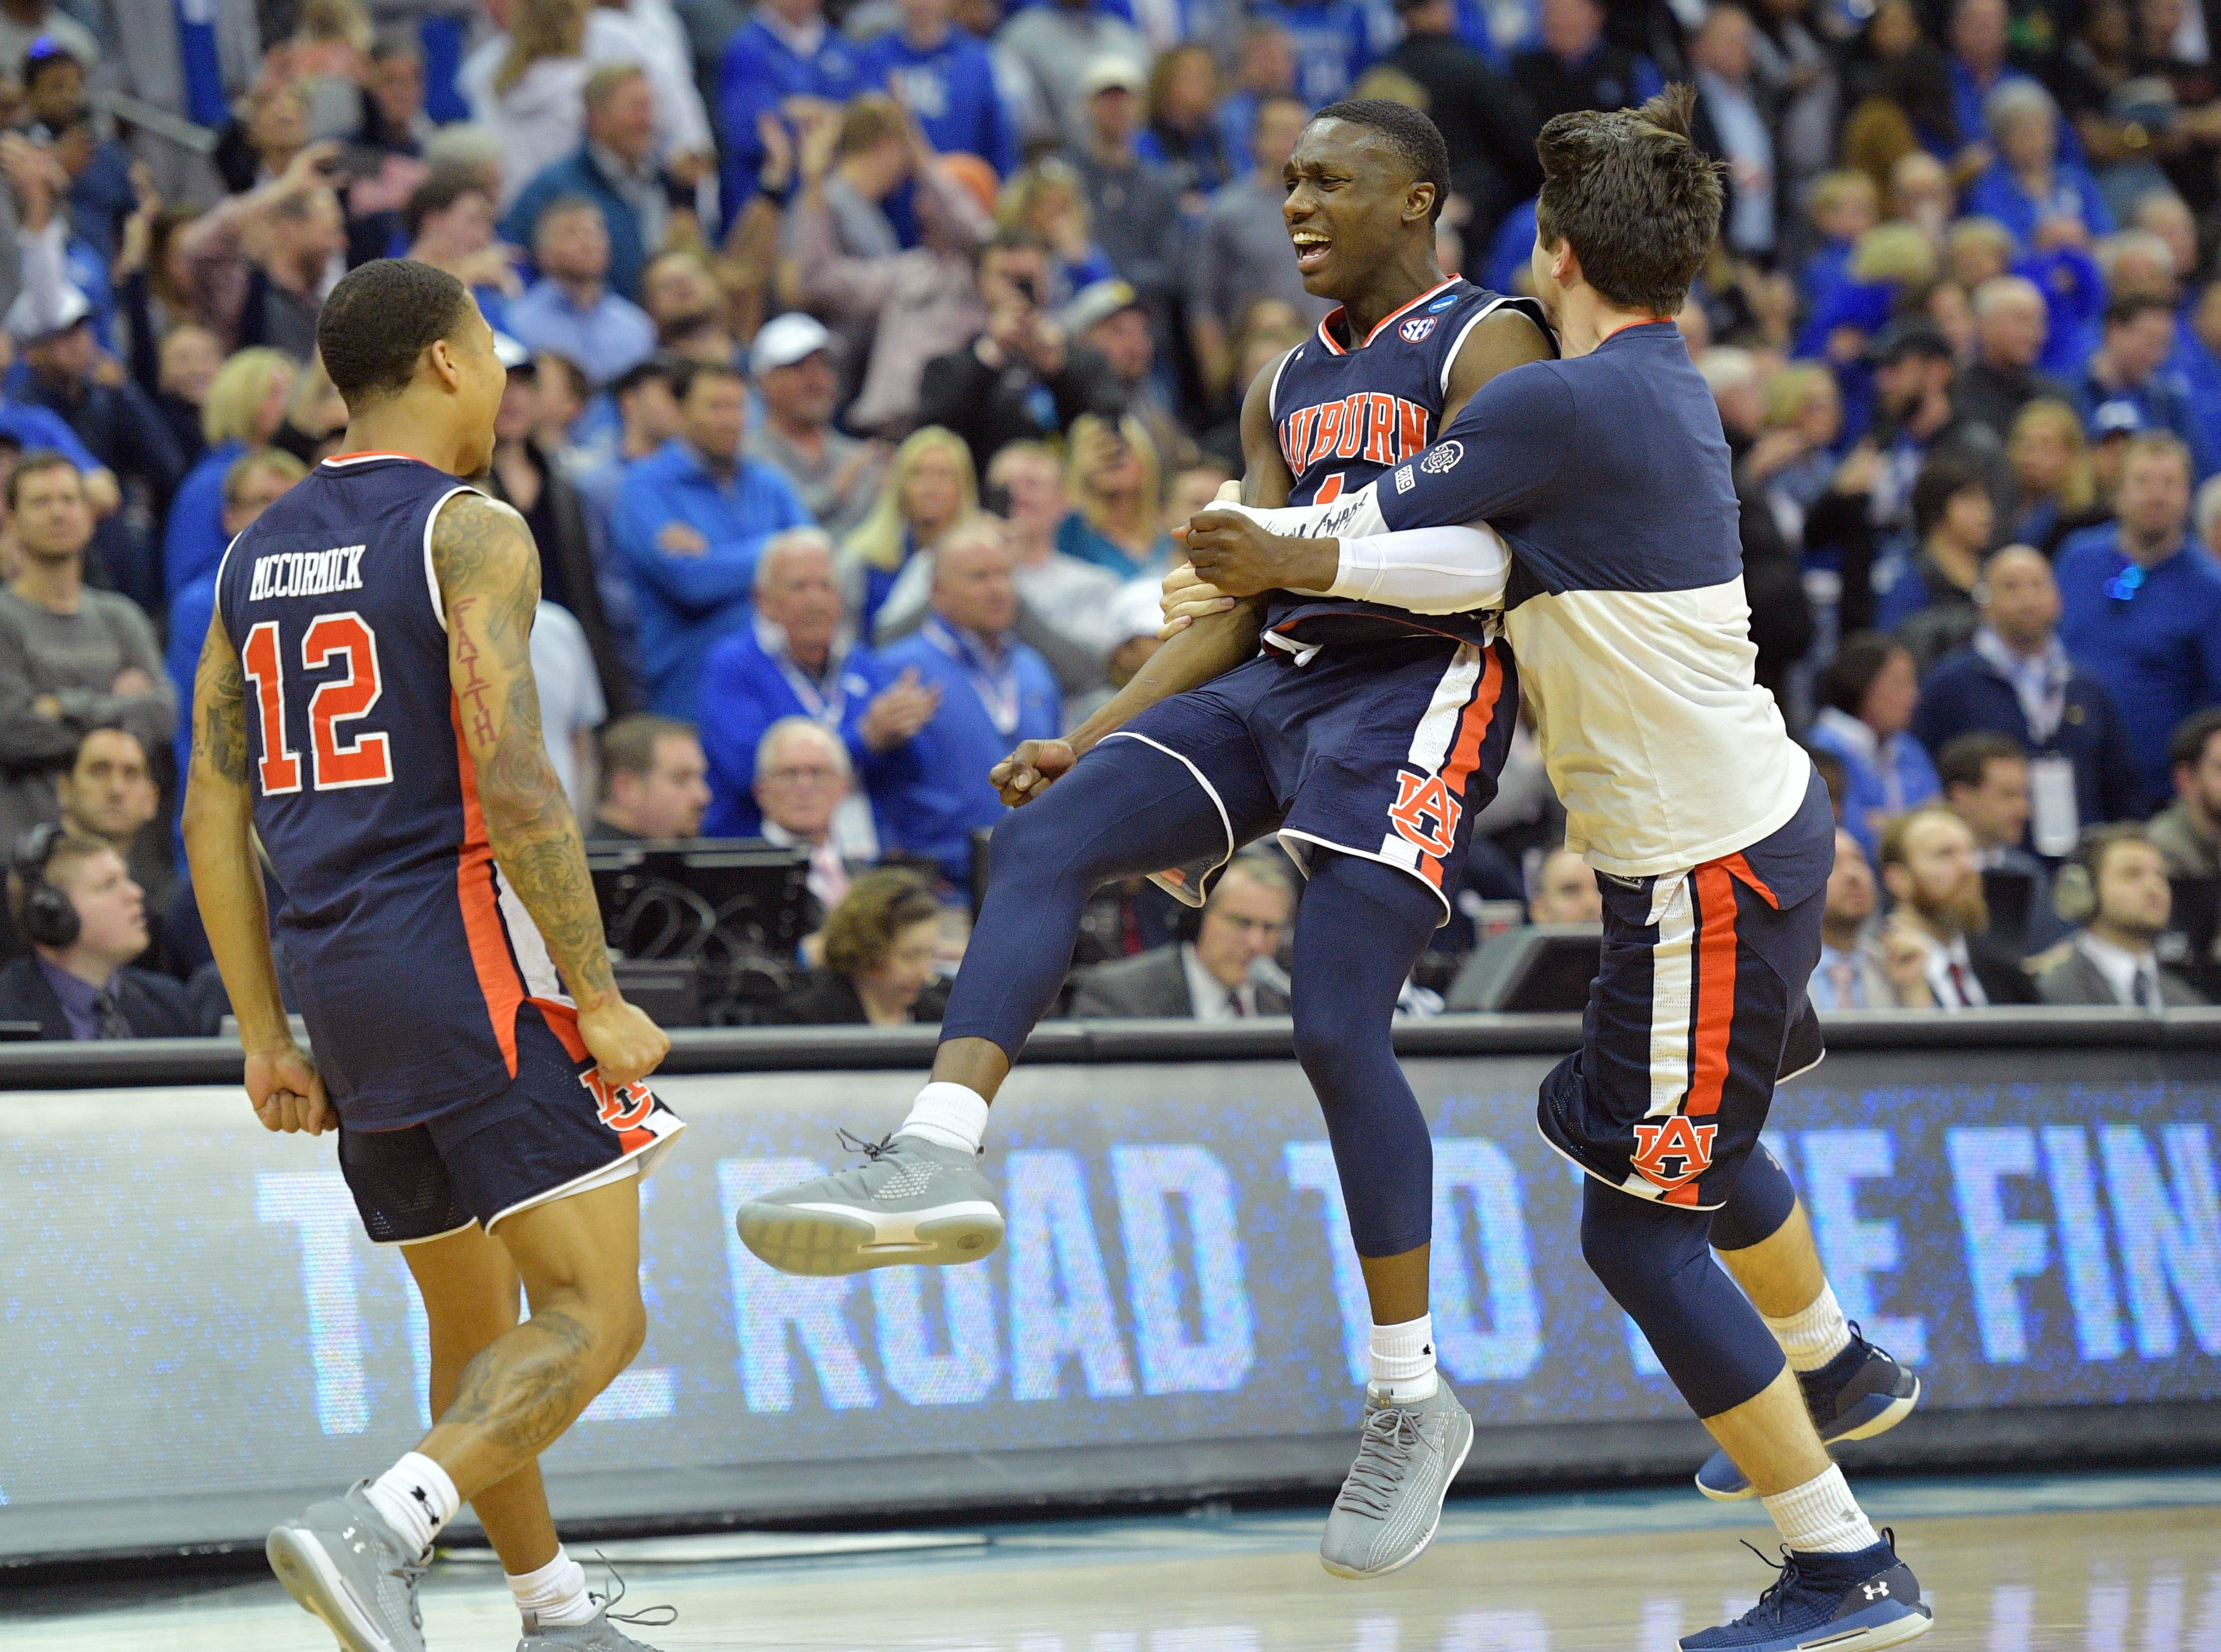 Mar 31, 2019; Kansas City, MO, United States; Auburn Tigers players including Jared Harper (1) and J'Von McCormick (12) celebrate after defeating the Kentucky Wildcats in the championship game of the midwest regional of the 2019 NCAA Tournament at Sprint Center. Mandatory Credit: Denny Medley-USA TODAY Sports